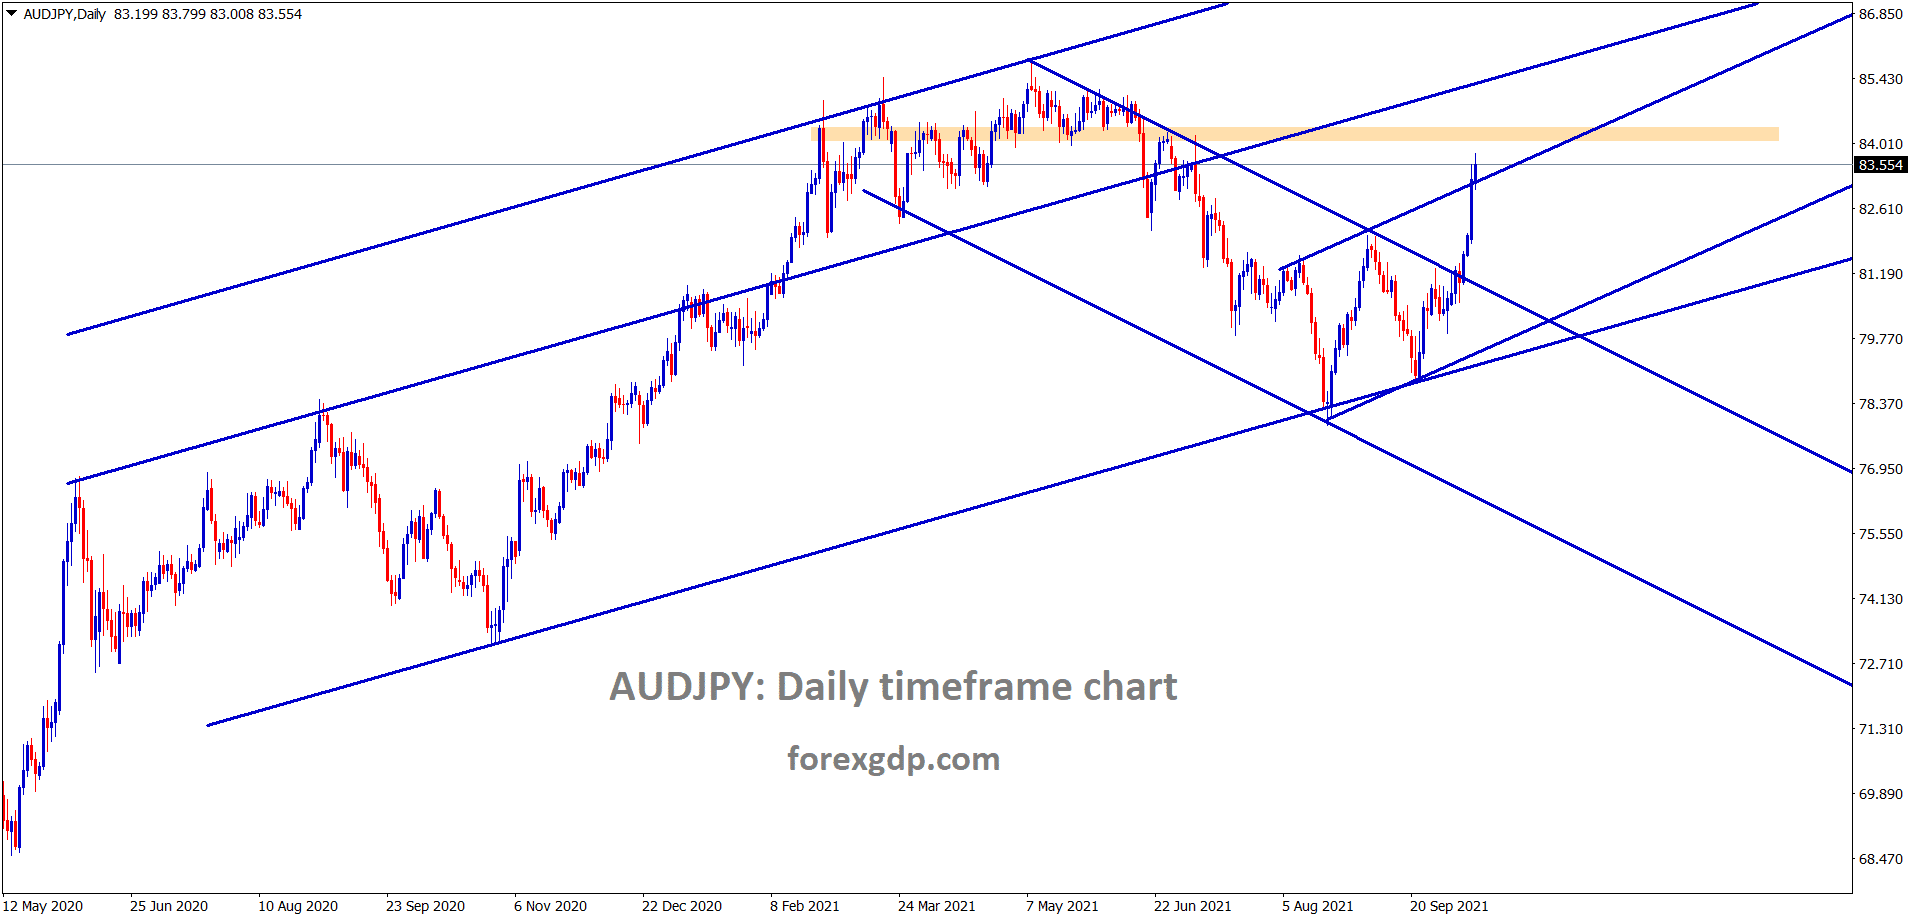 AUDJPY is moving continuously breaking the highs with buyers pressure